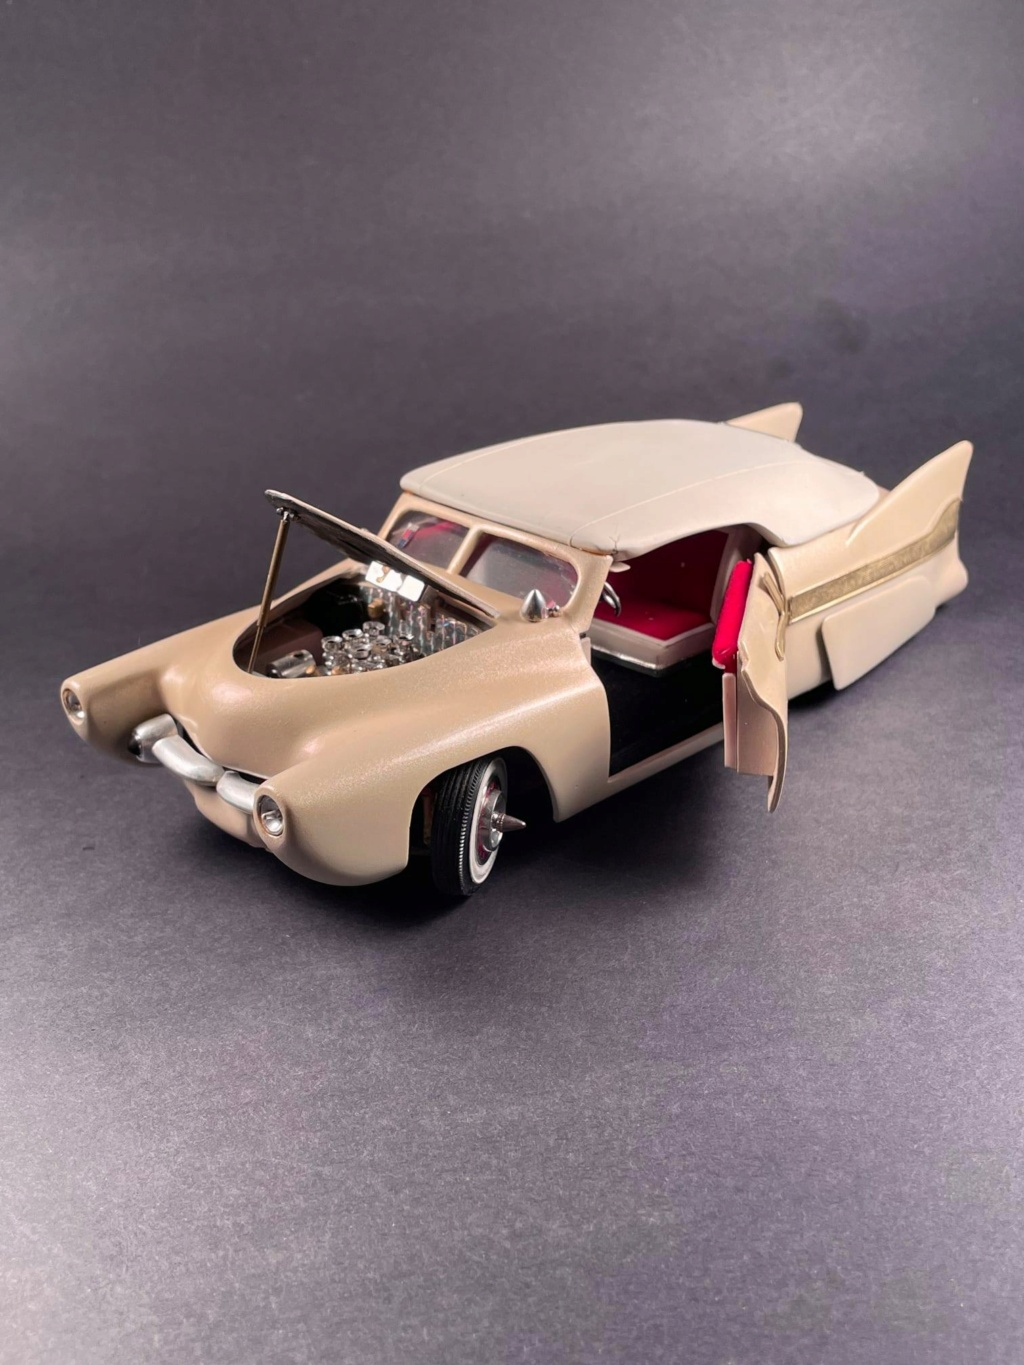 1950 Ford Convertible - customizing kit - trophie series - amt 22642810